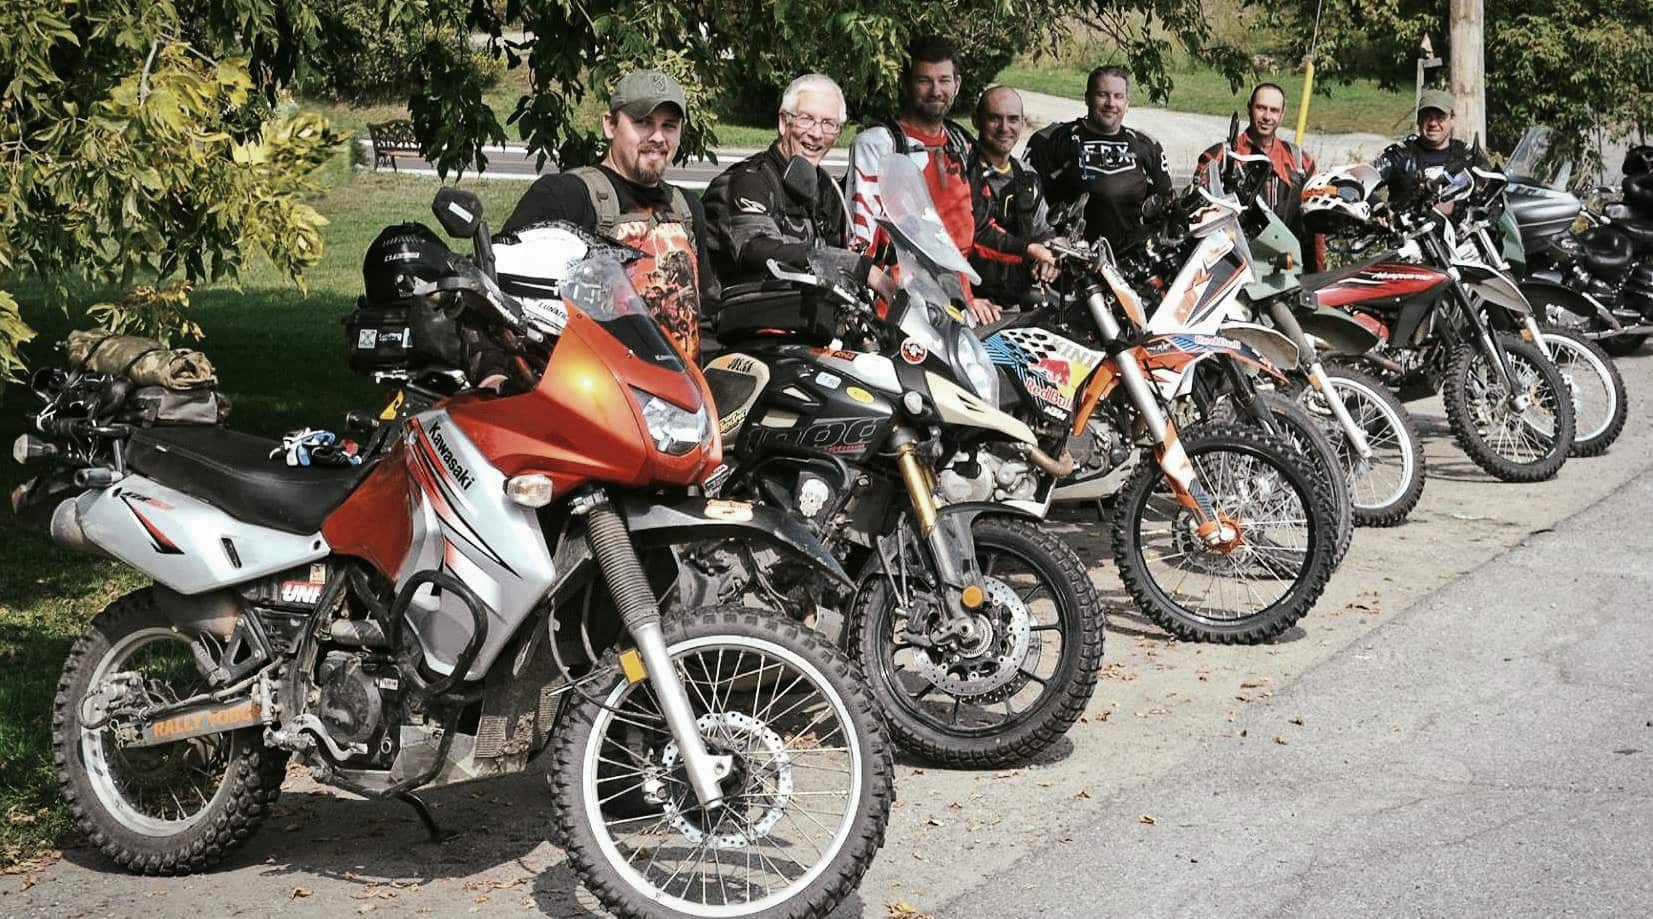 6 Adventure Motorcycle Riding Activities To Check-Out In Ontario